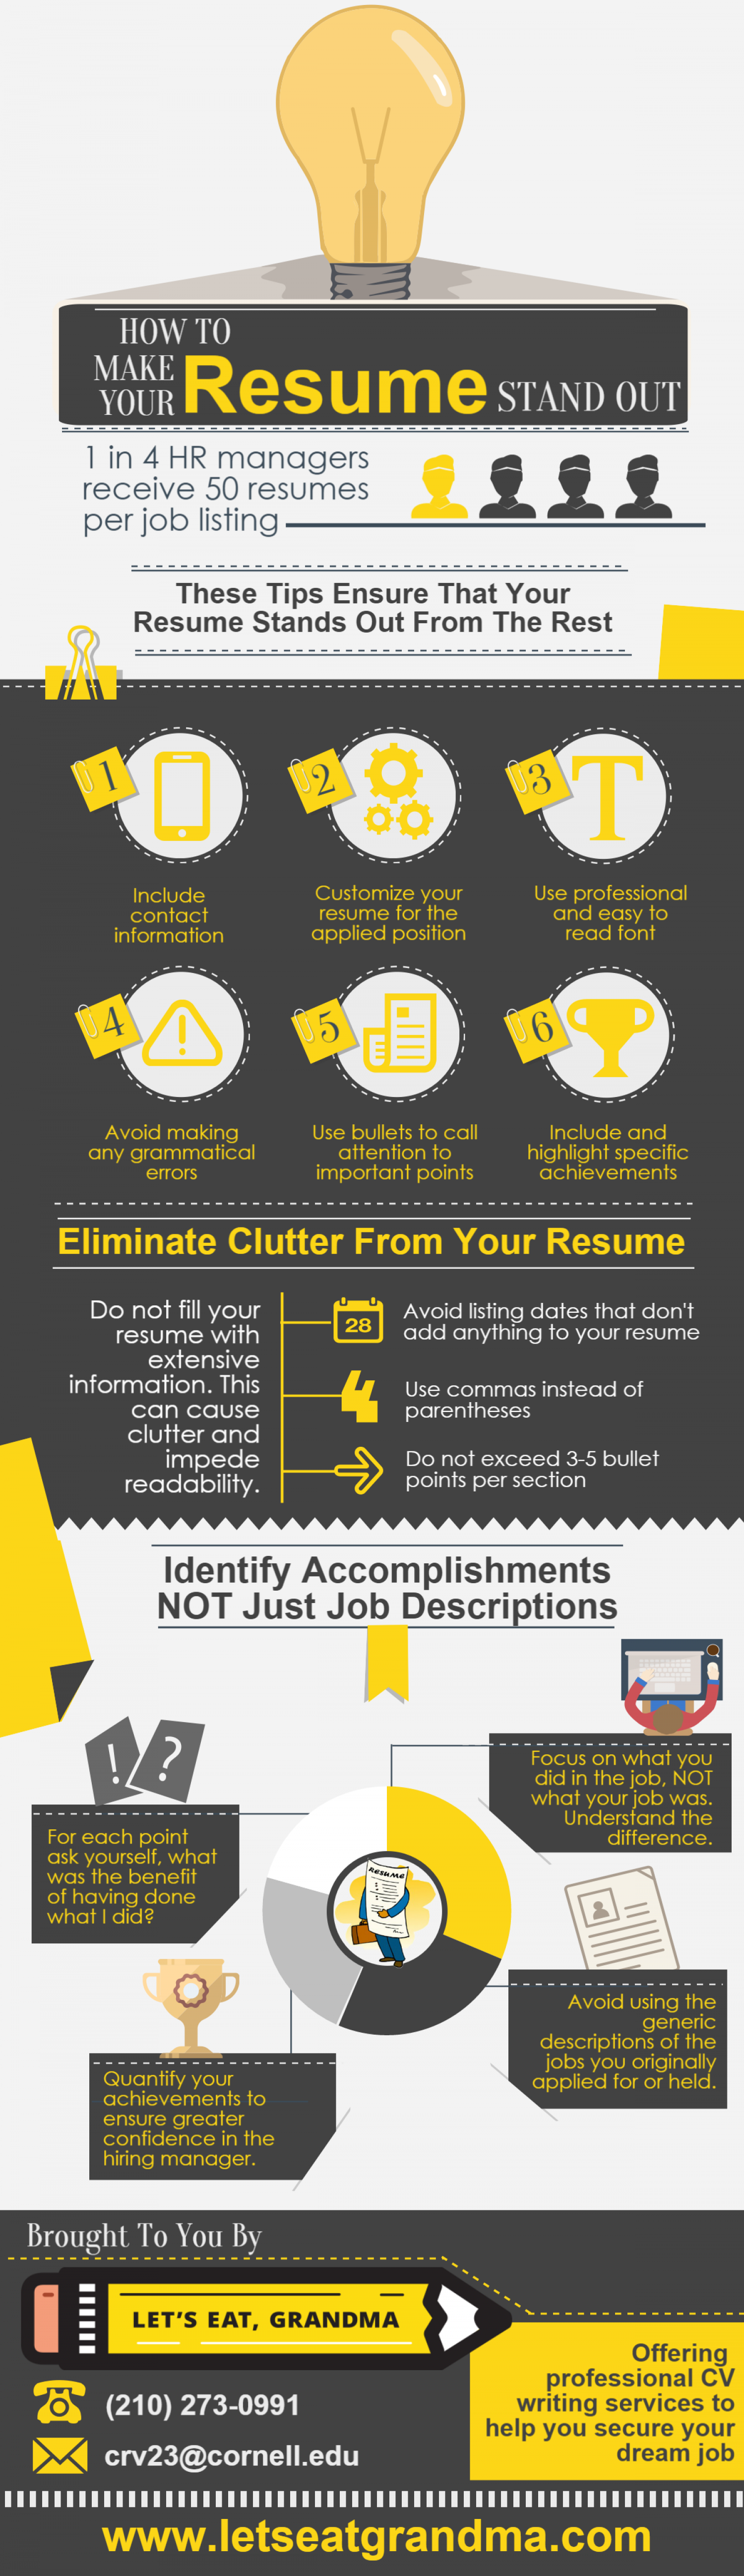 How To Make Your Resume Stand Out Infographic  How To Make Your Resume Stand Out